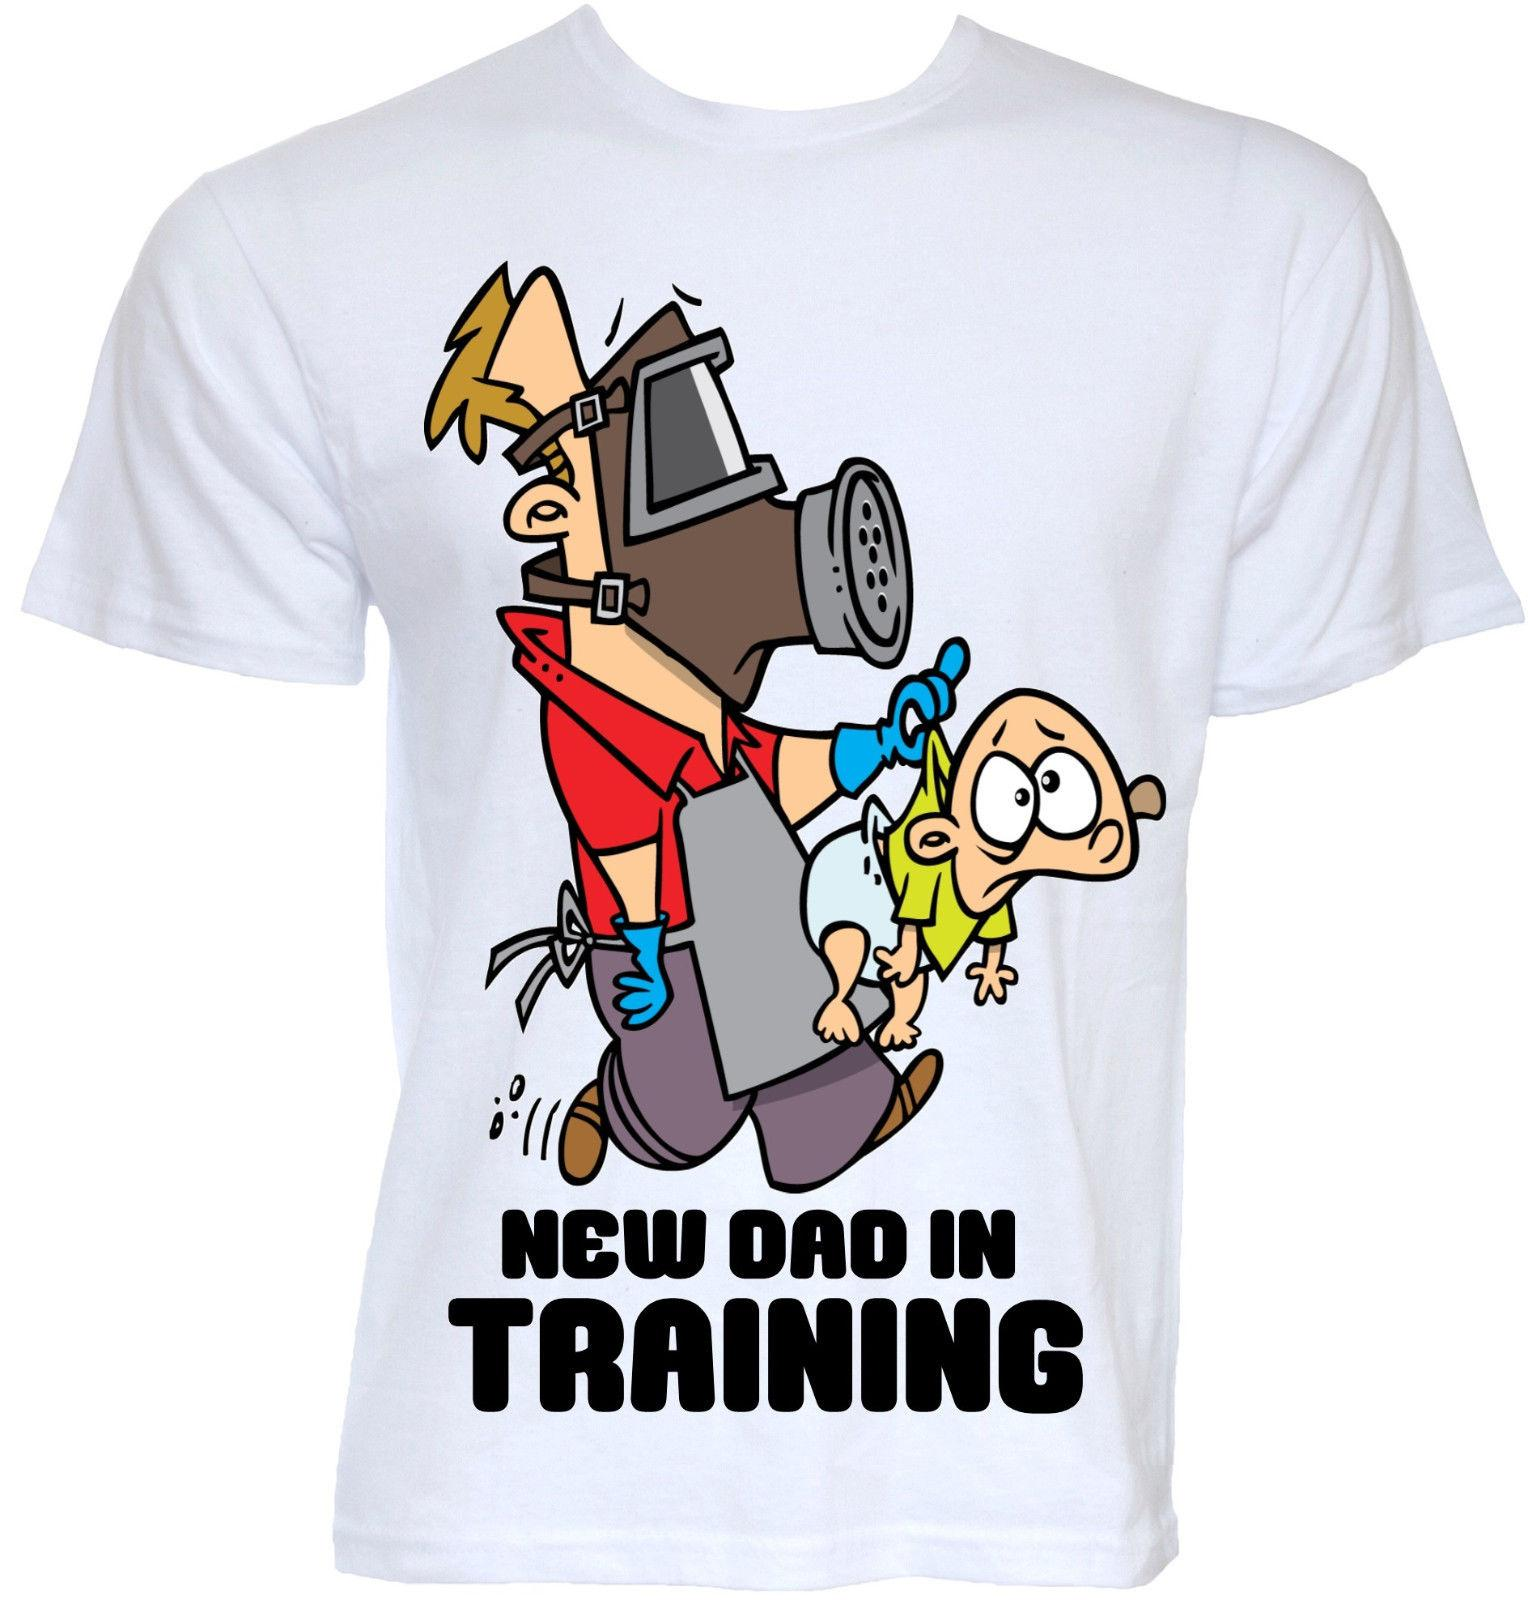 67c337524 MENS FUNNY COOL NOVELTY NEW DADDY DAD T SHIRTS BABY SHOWER GIFTS PRESENTS  IDEAS New Tops Newest Top Tees Awesome Tee Shirt Designs T Shirts Awesome  From ...